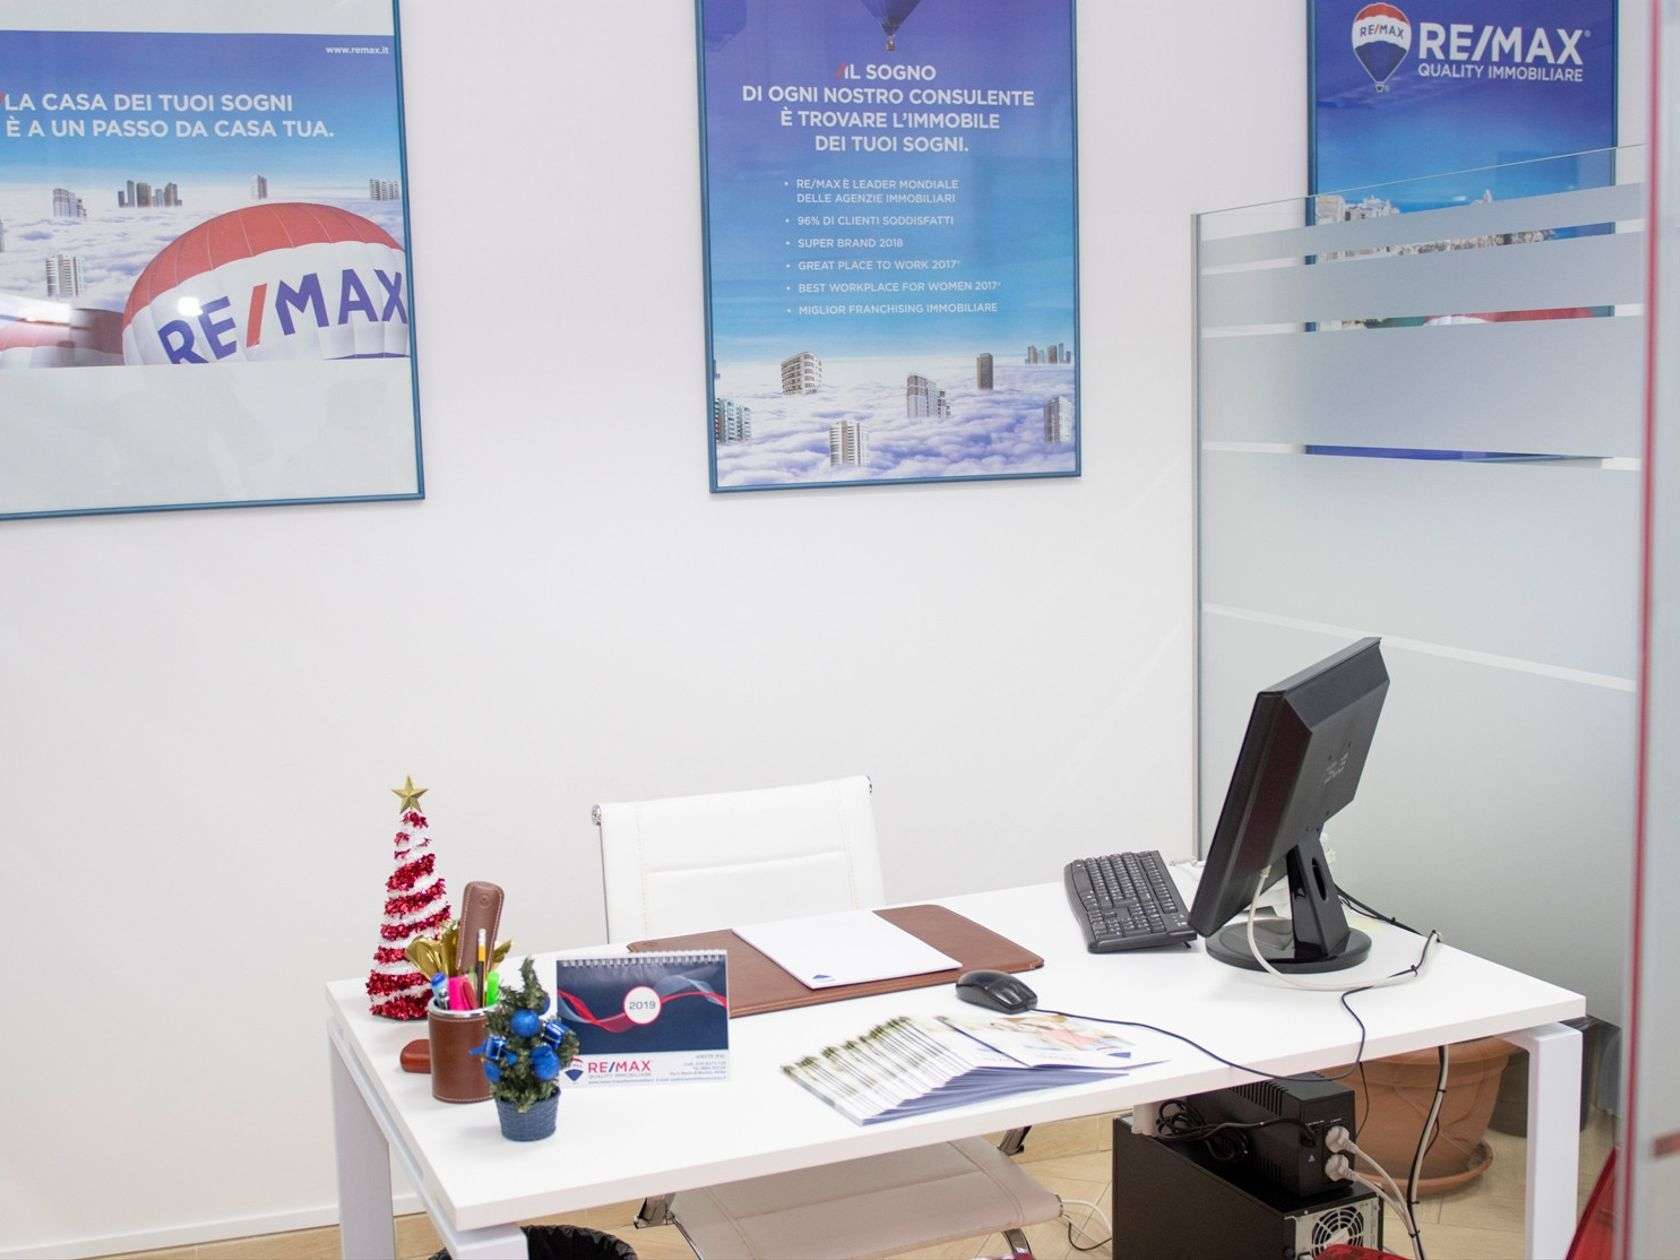 RE/MAX Quality Immobiliare Vieste - Foto 2